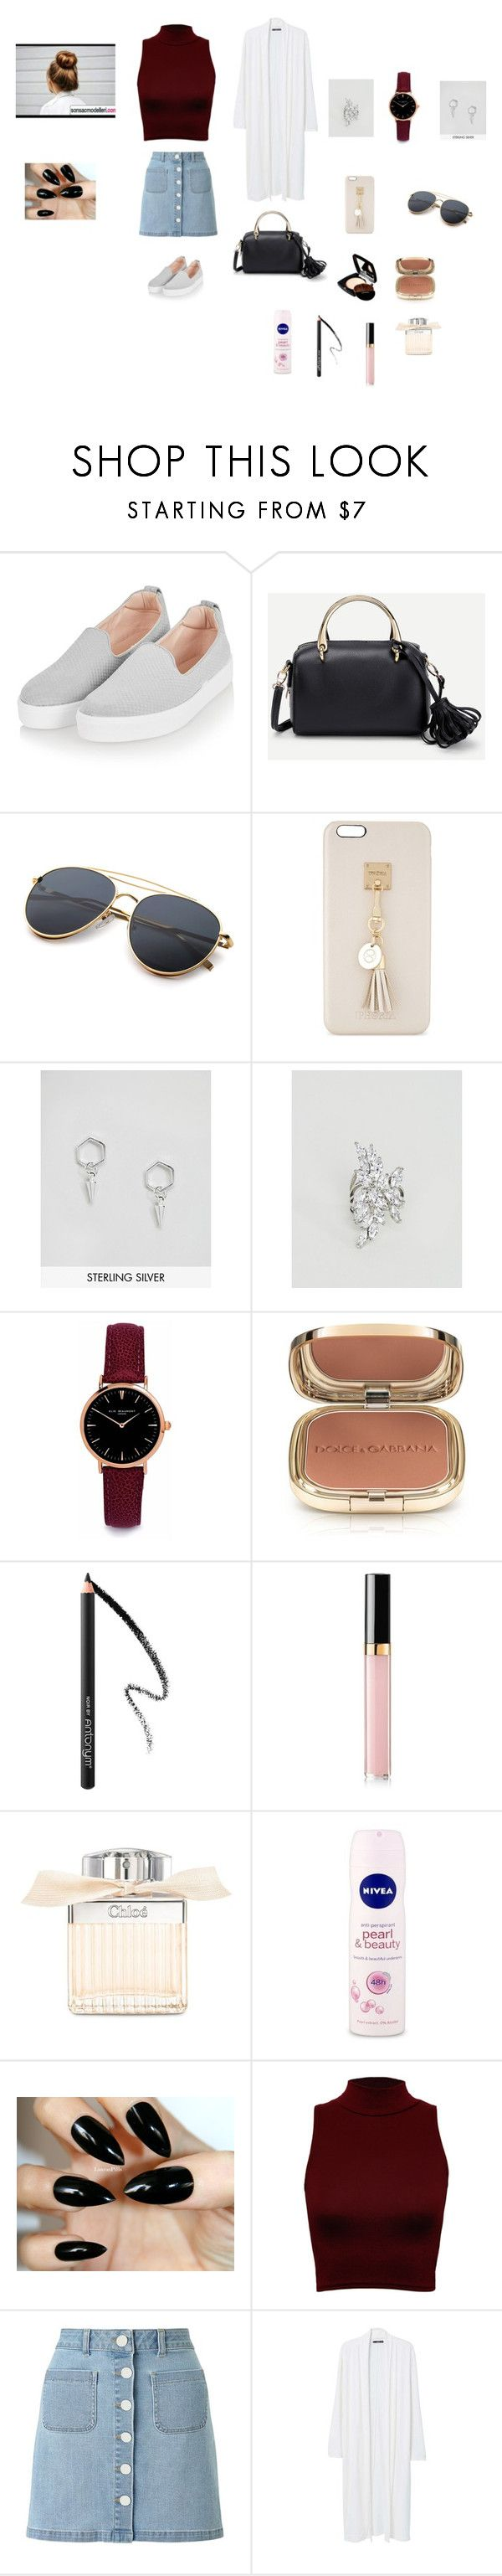 """""""🙂🙂"""" by aiea ❤ liked on Polyvore featuring Topshop, Iphoria, ASOS, ALDO, Elie Beaumont, Chanel, Dolce&Gabbana, Chloé, Nivea and WearAll"""